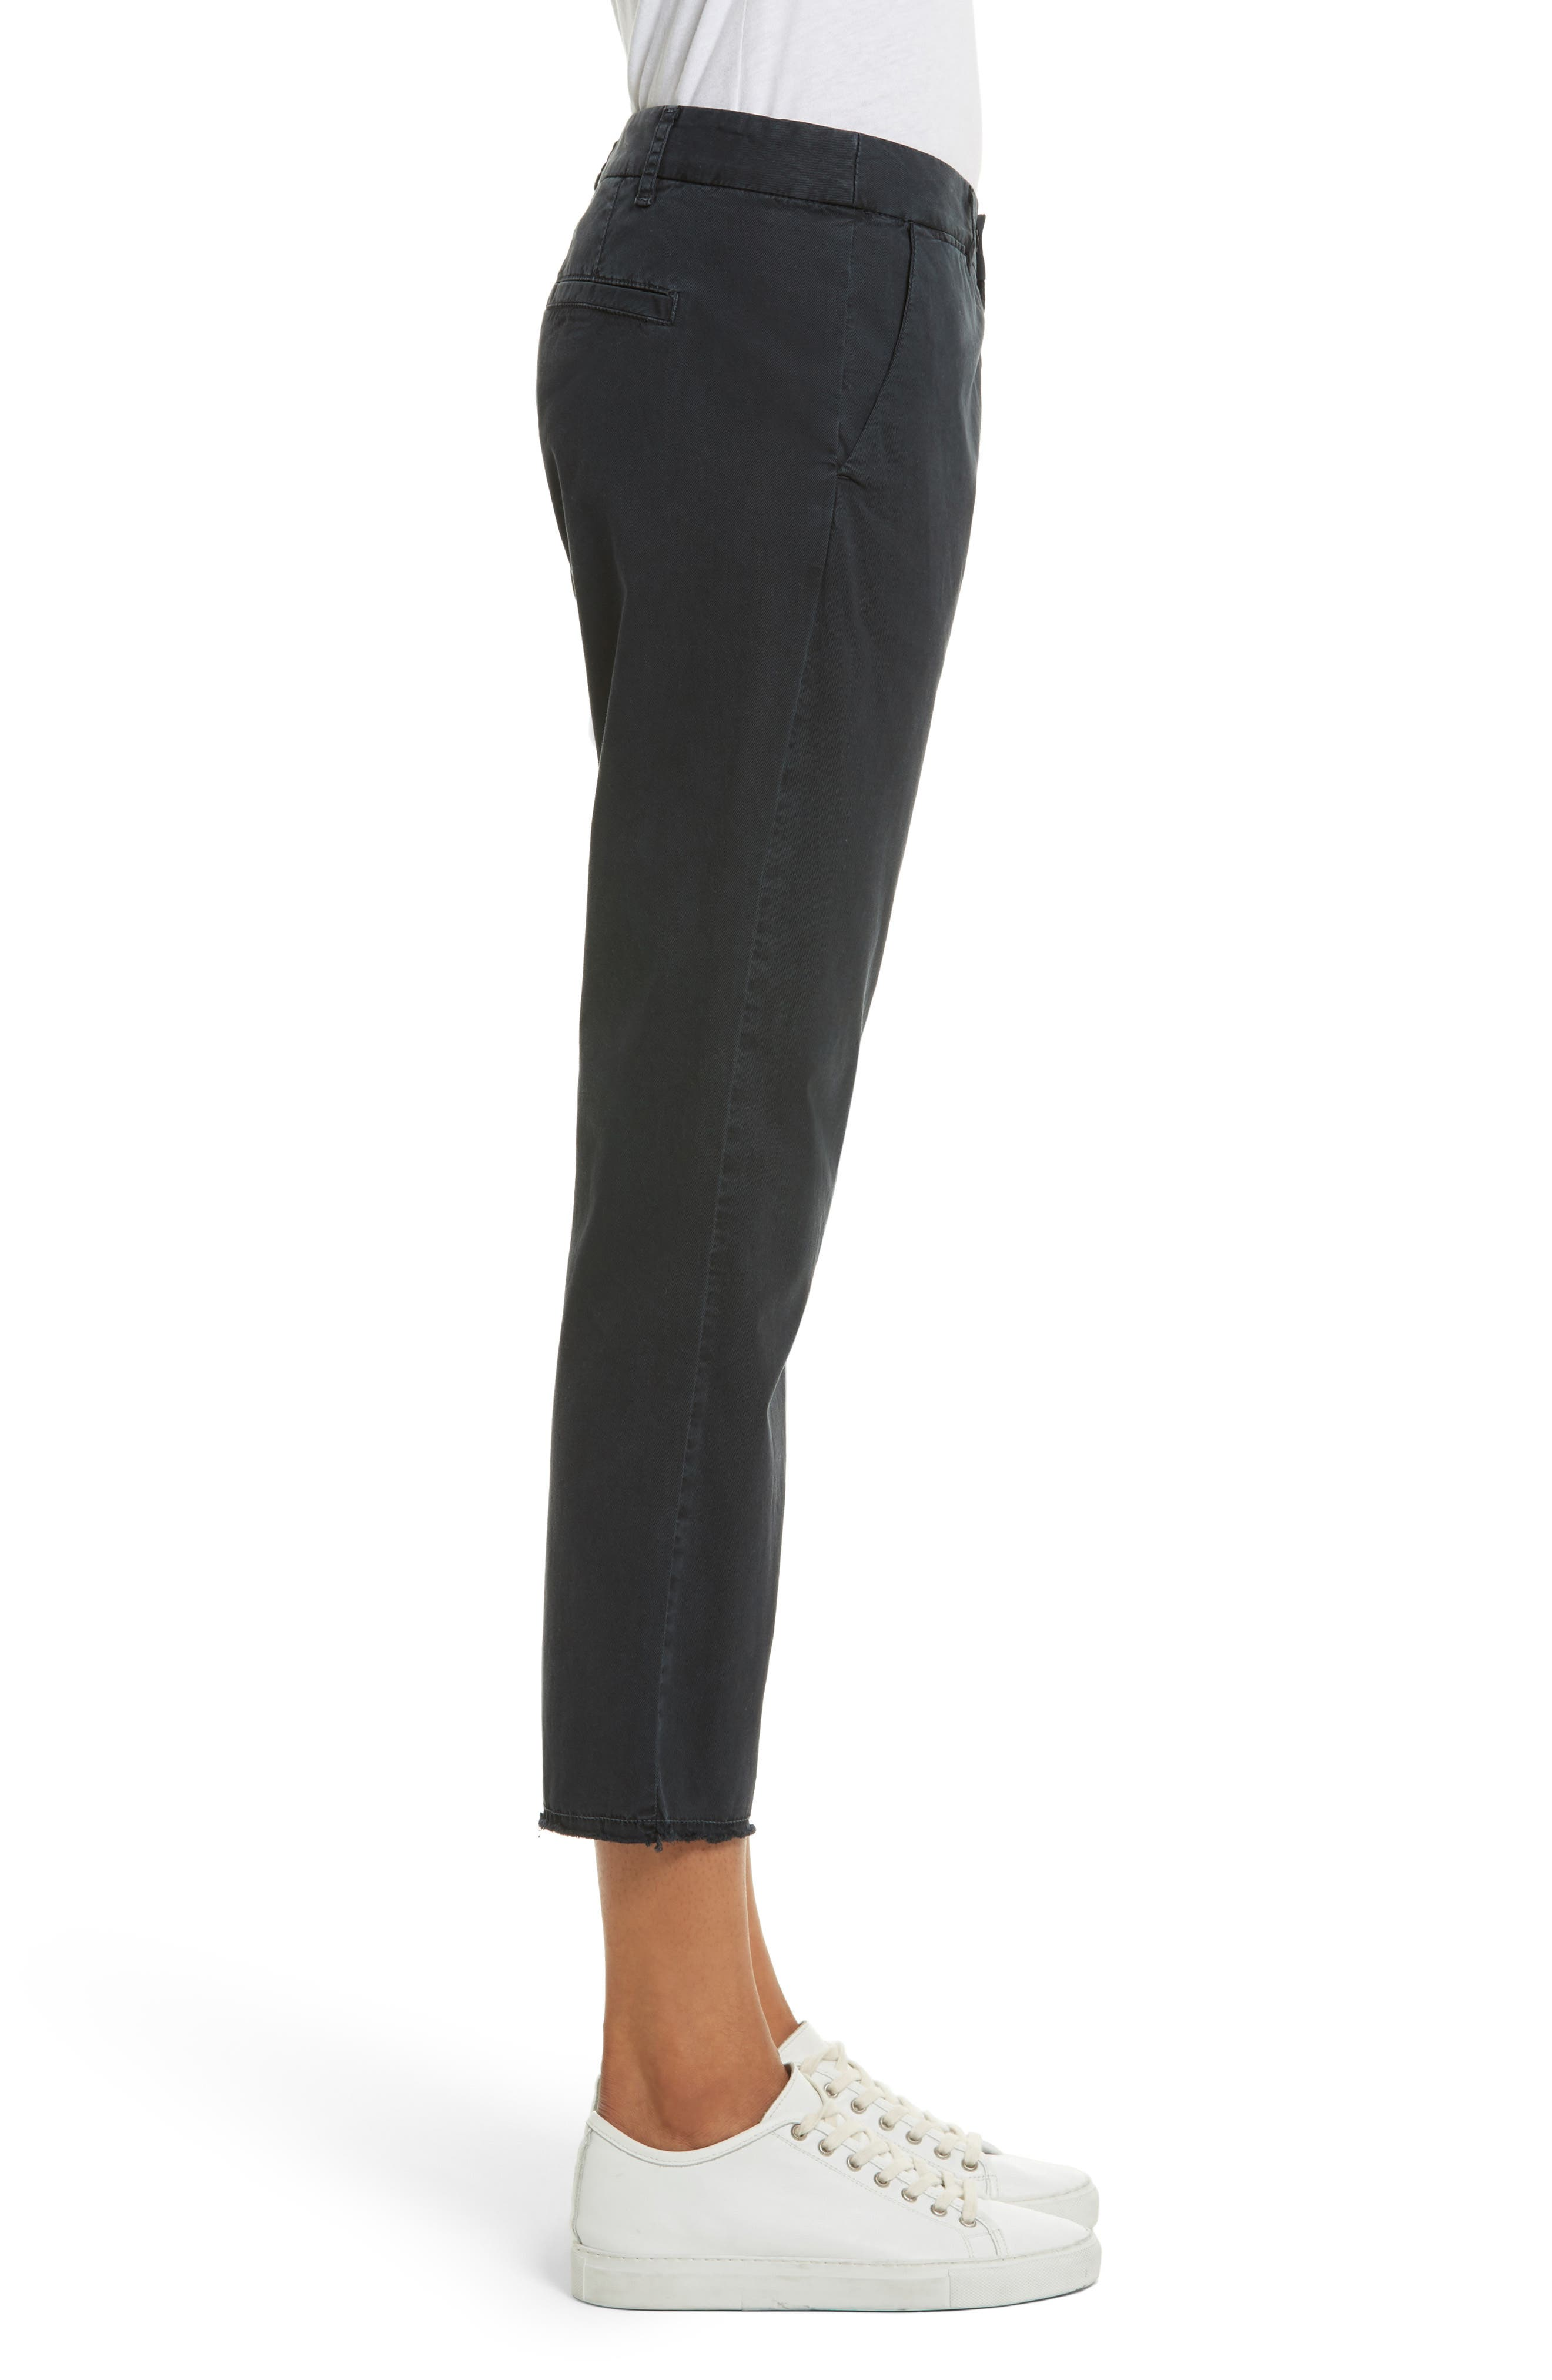 East Hampton Stretch Cotton Twill Crop Pants,                             Alternate thumbnail 3, color,                             Dark Navy